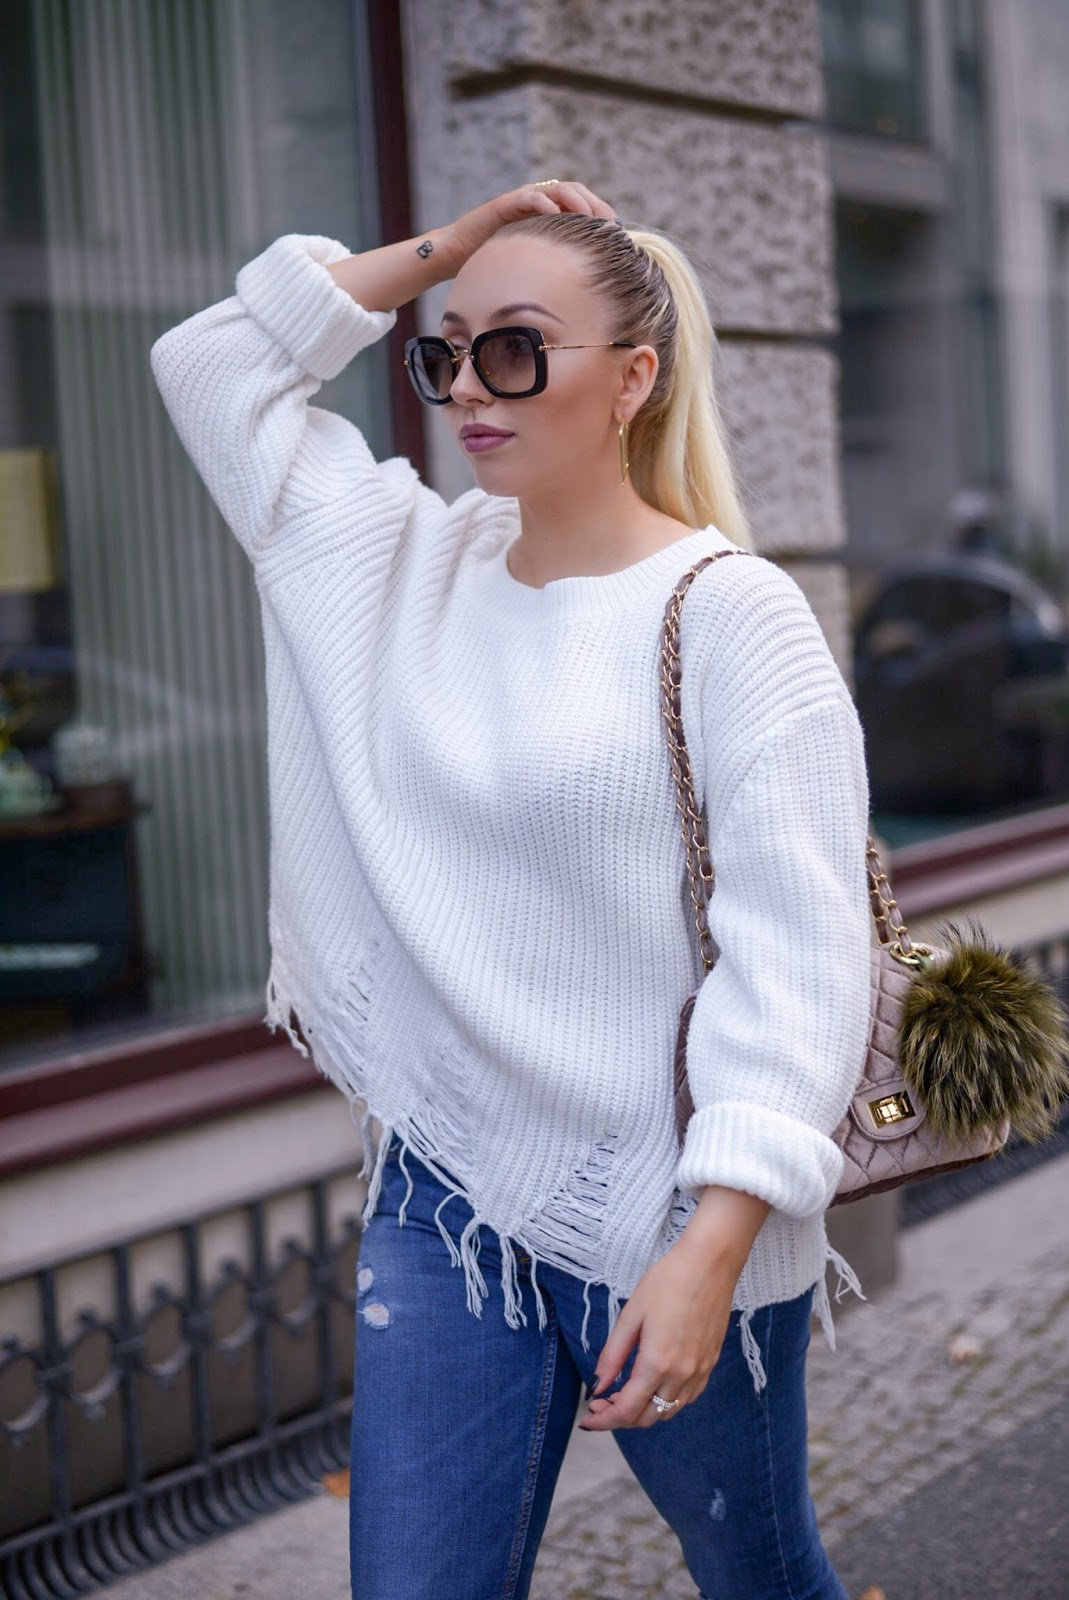 fall outfit inspiration_autumn outfits_what to wear for fall_chanel inspired bag_ripped knit sweater